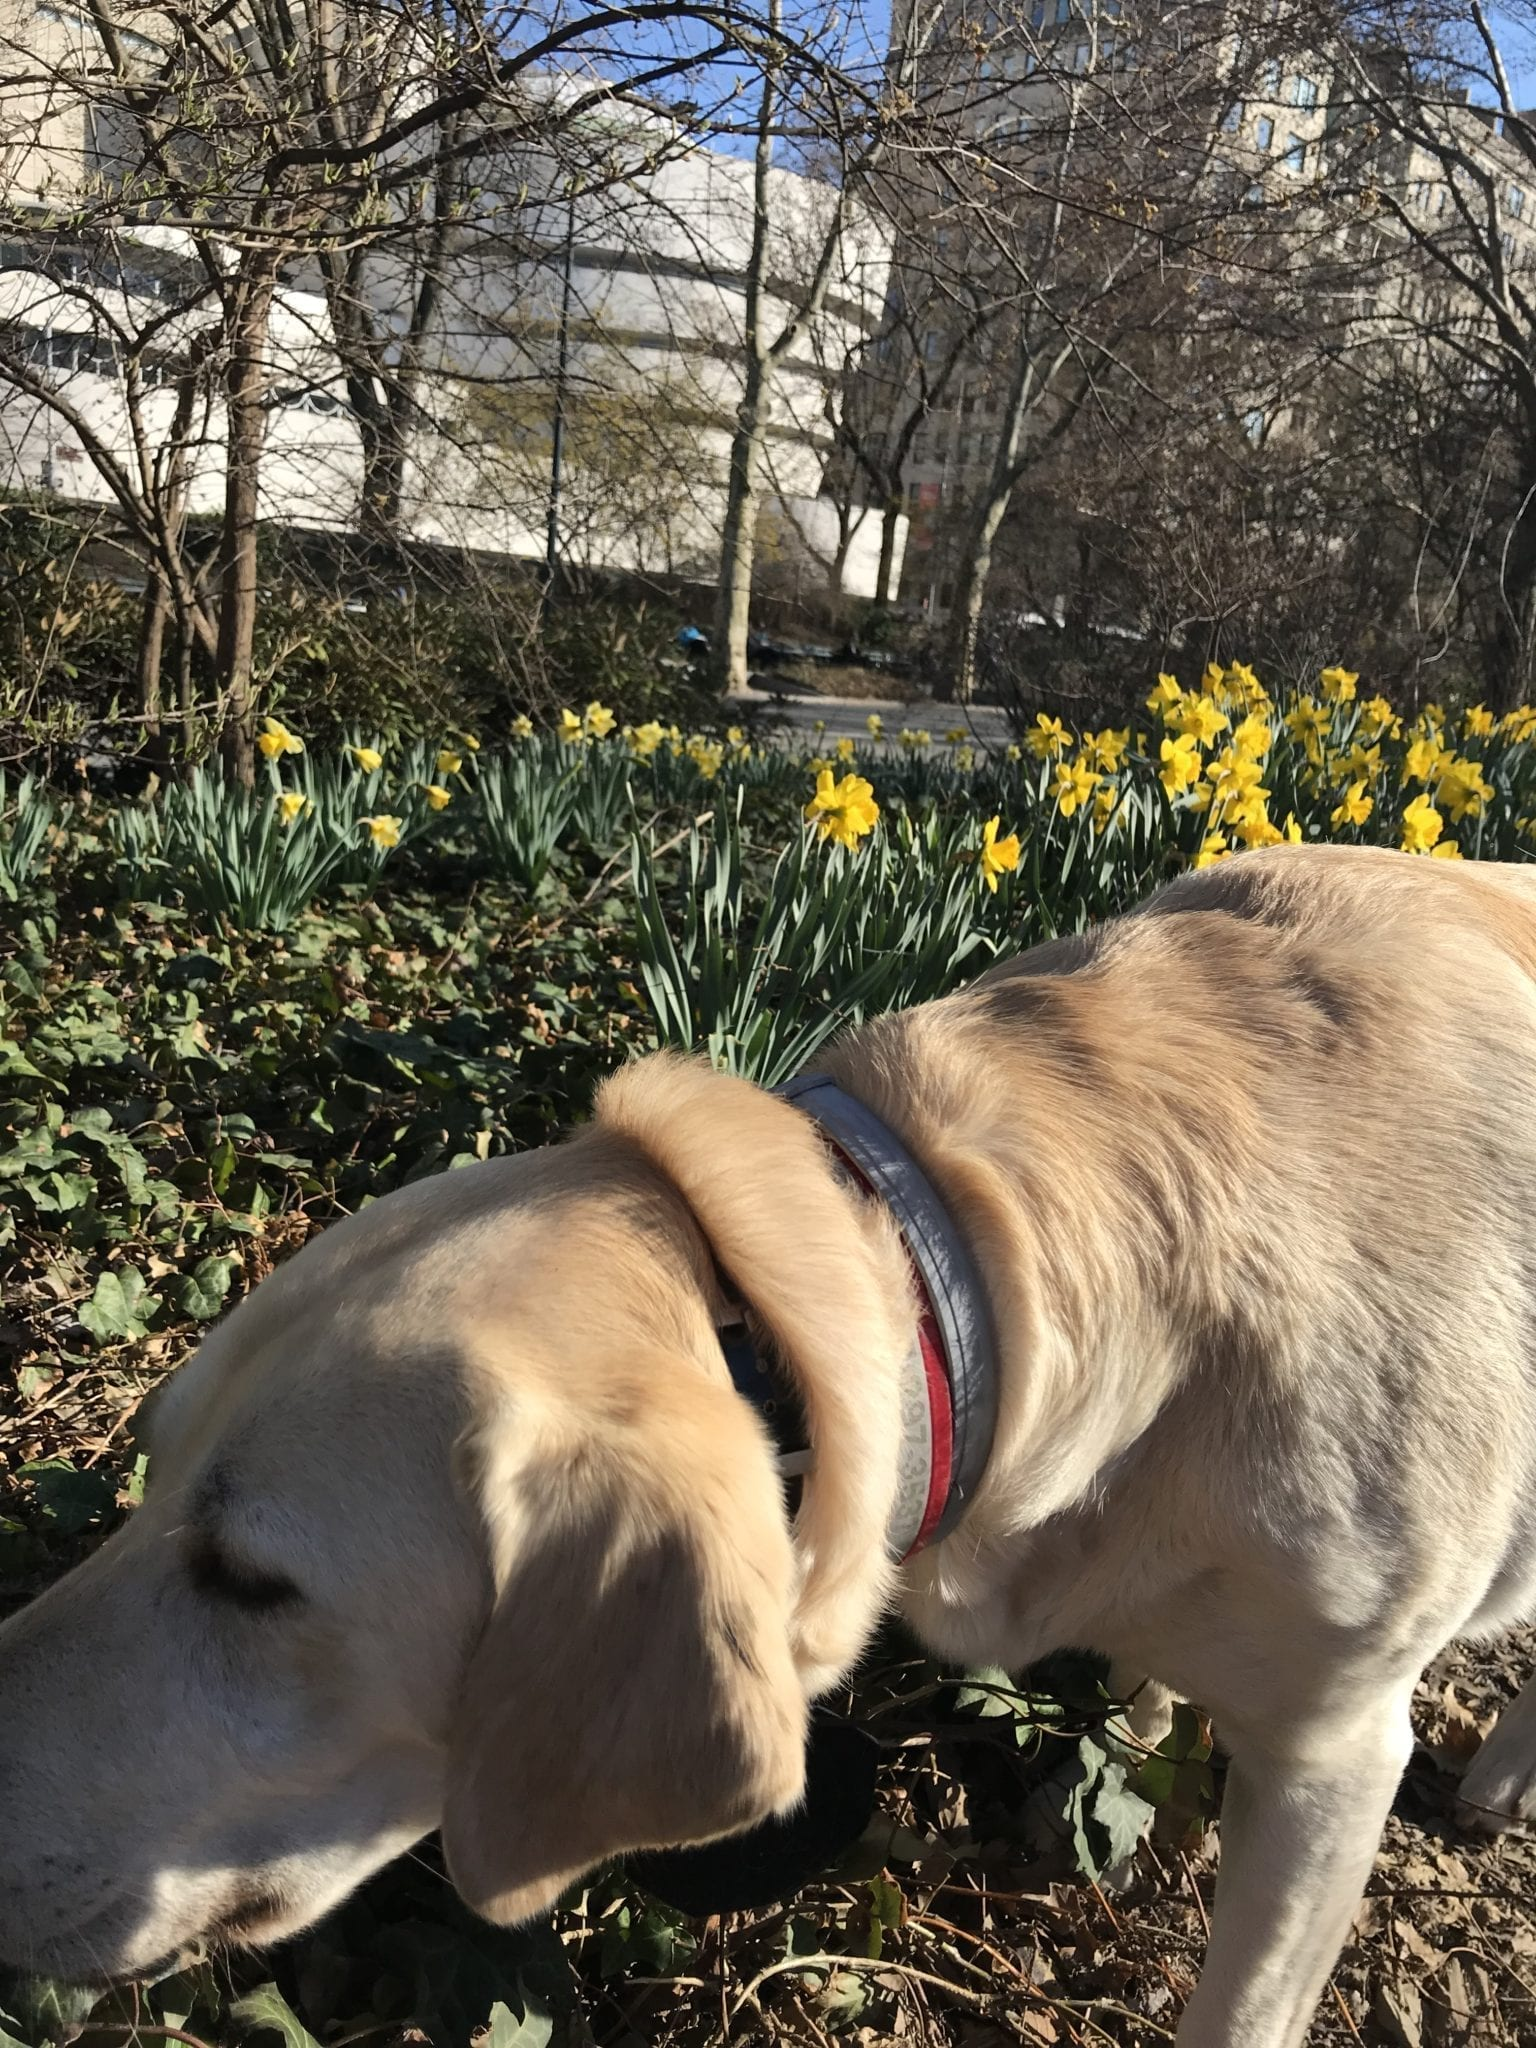 canine-review-nell-centralpark-april2019 guggenheim